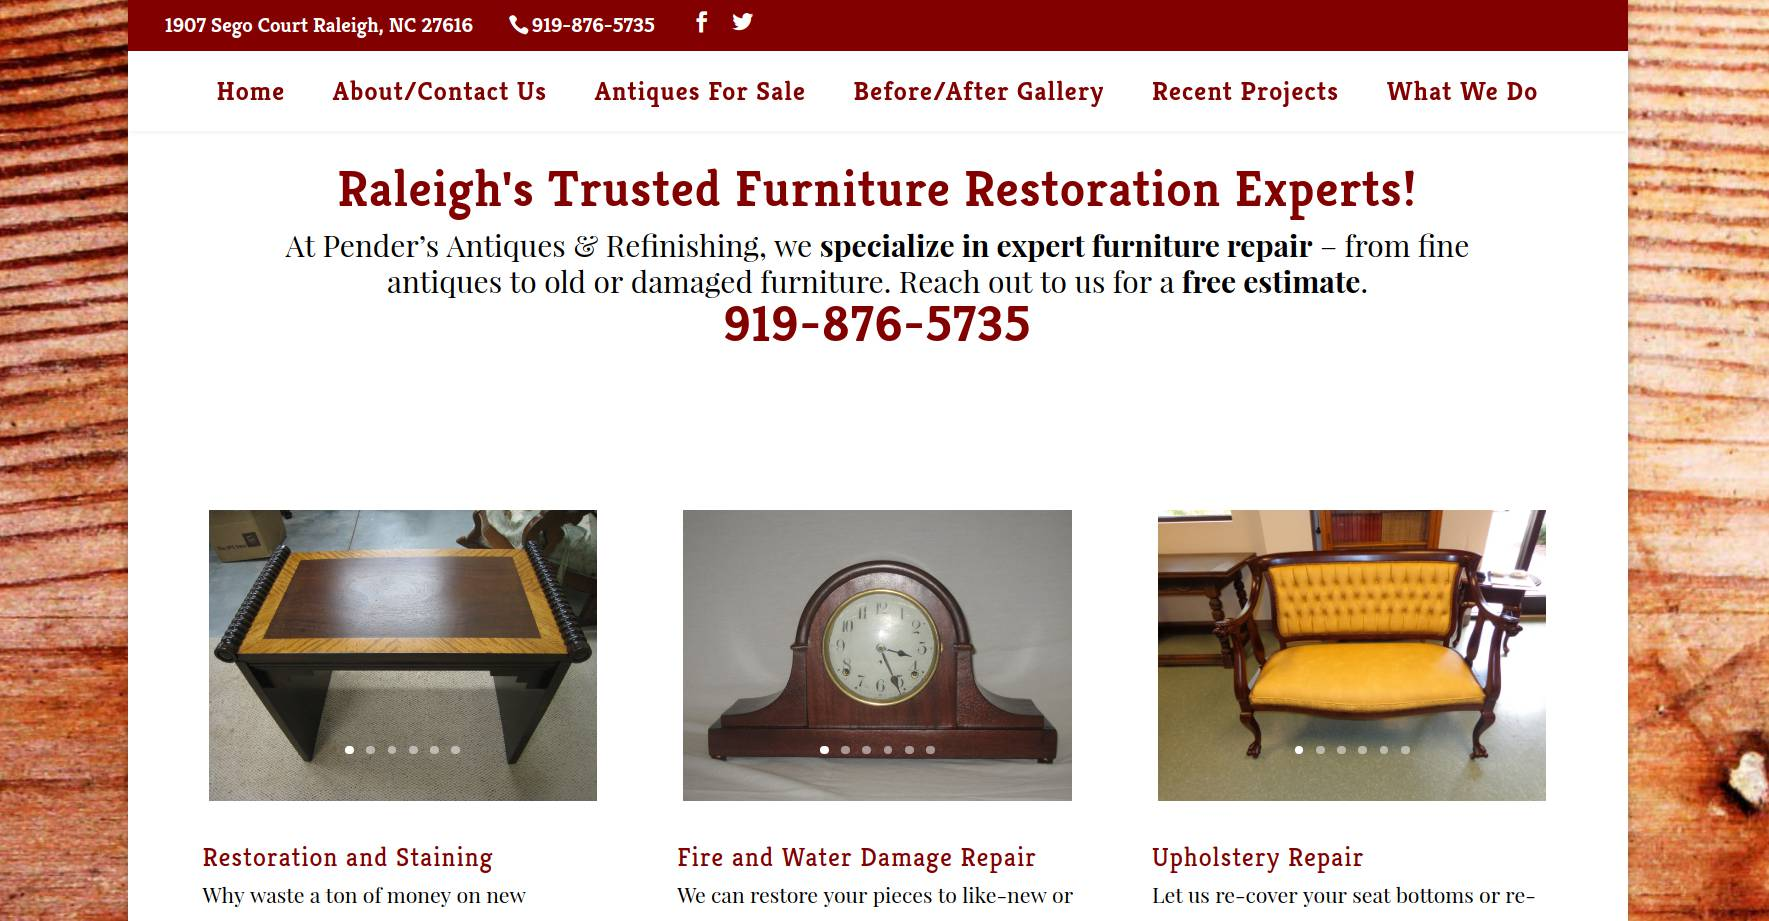 penders-antiques-desktop-raleigh-nc